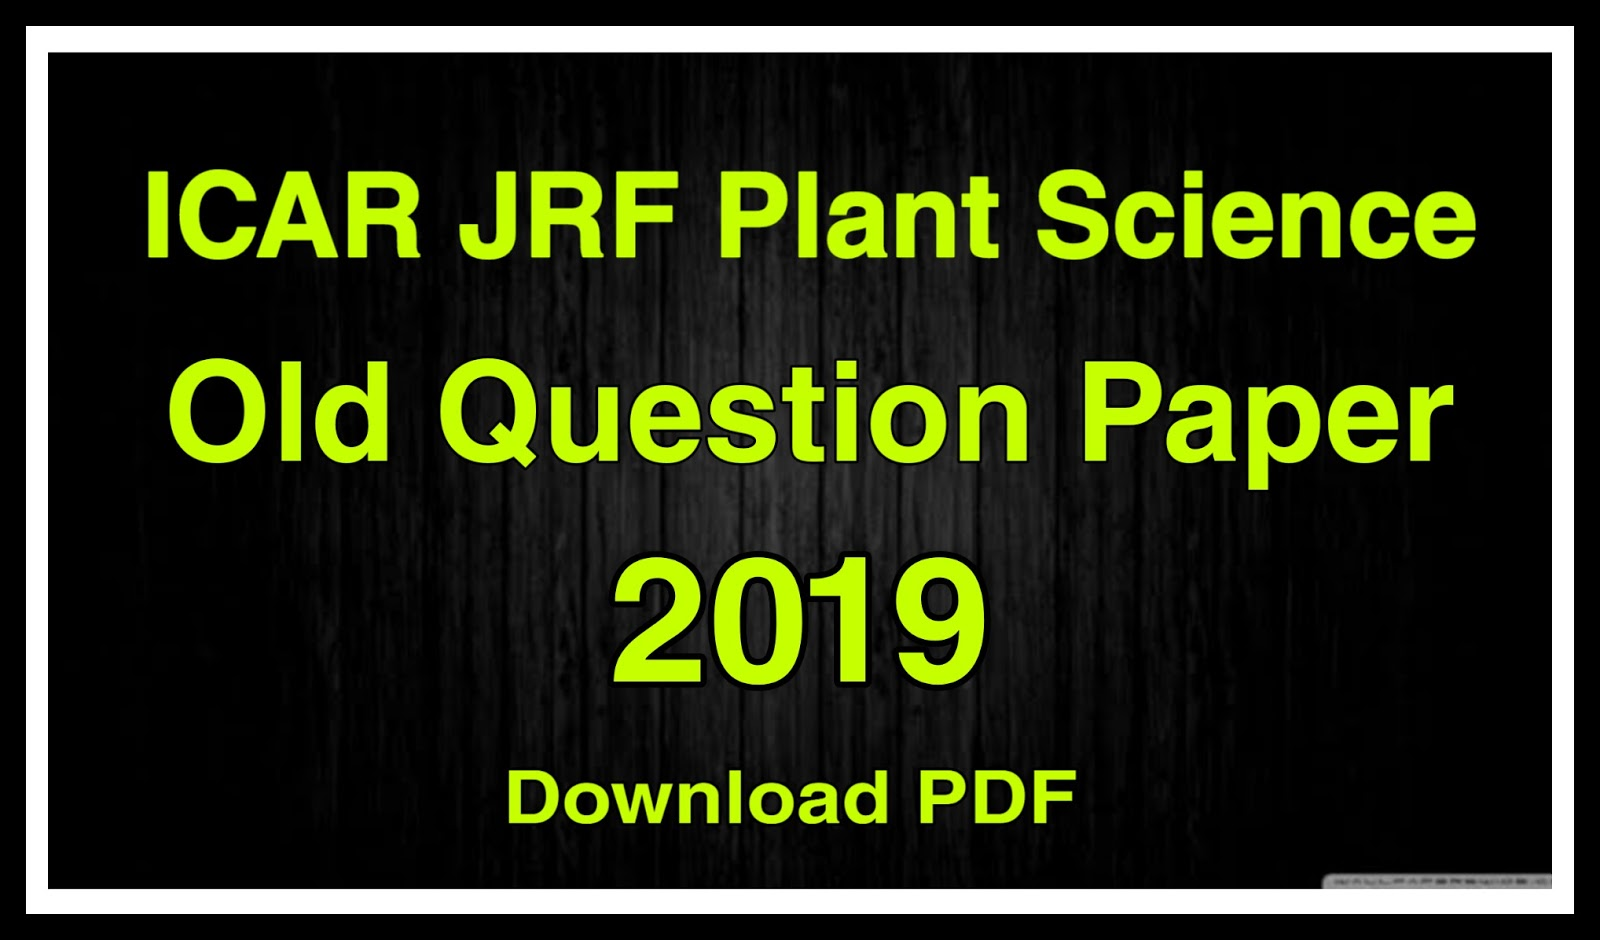 ICAR JRF Plant Science Old Question Paper 2019 - Download PDF